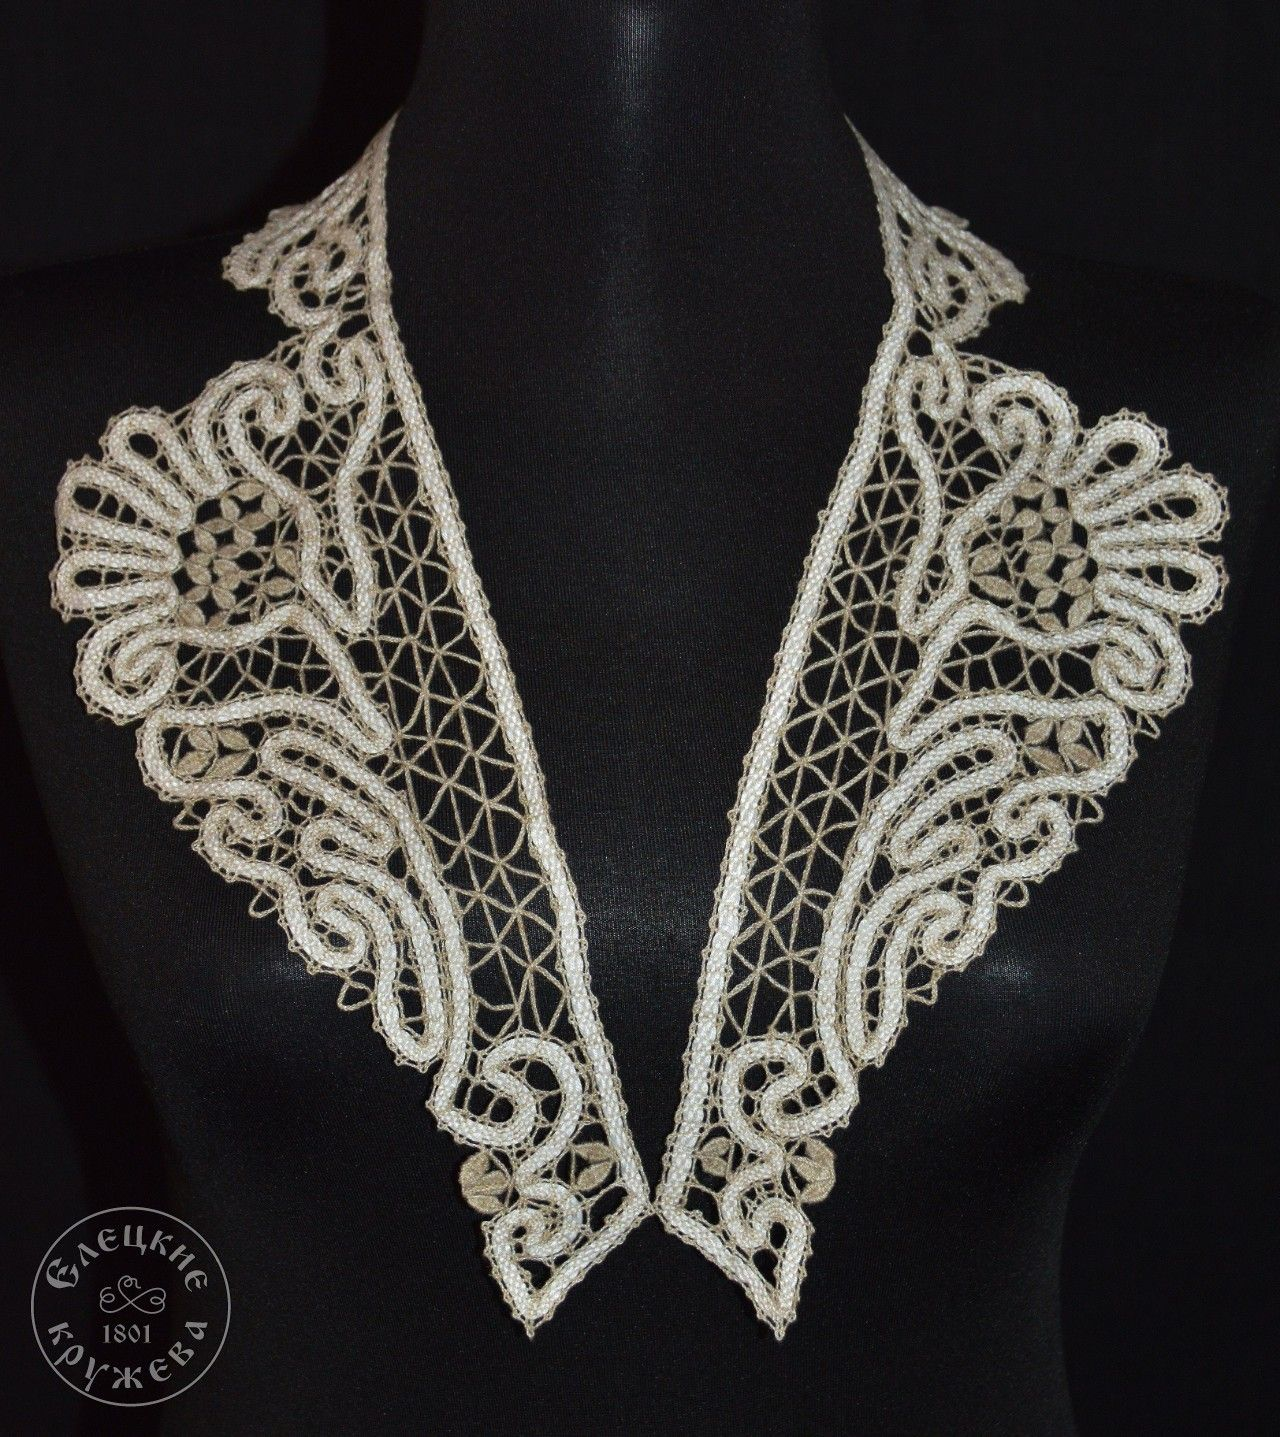 Yelets lace / Lace collar С520